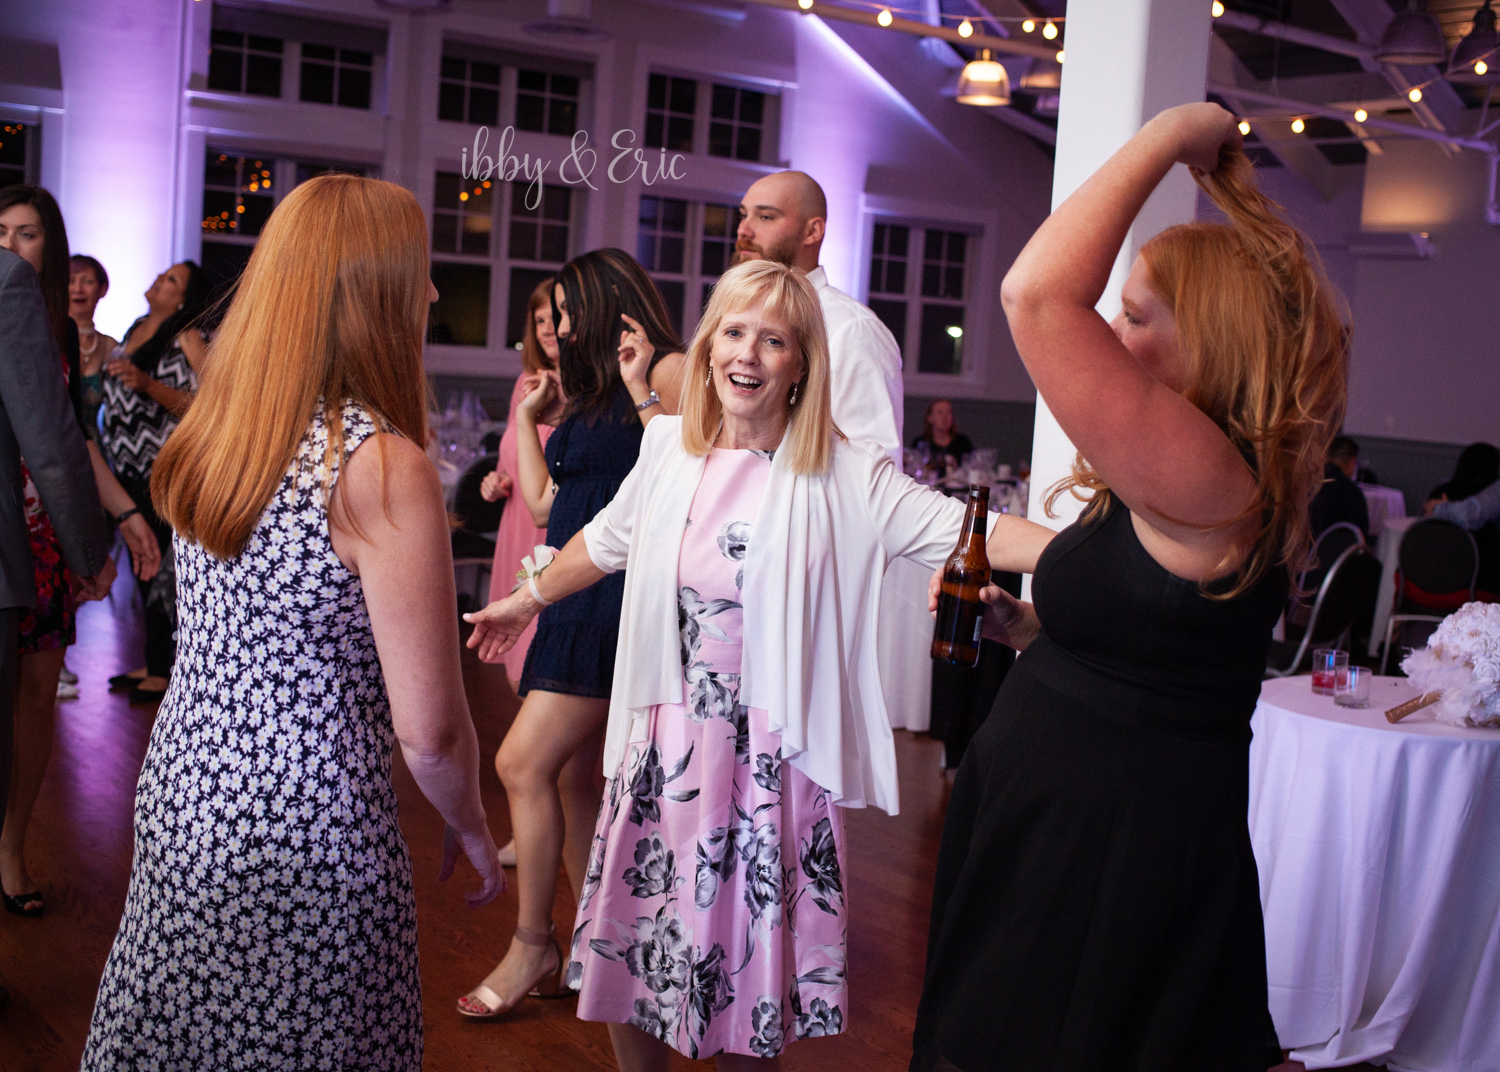 Mother of the groom wearing a pink floral dress & white sweater dances during the reception.